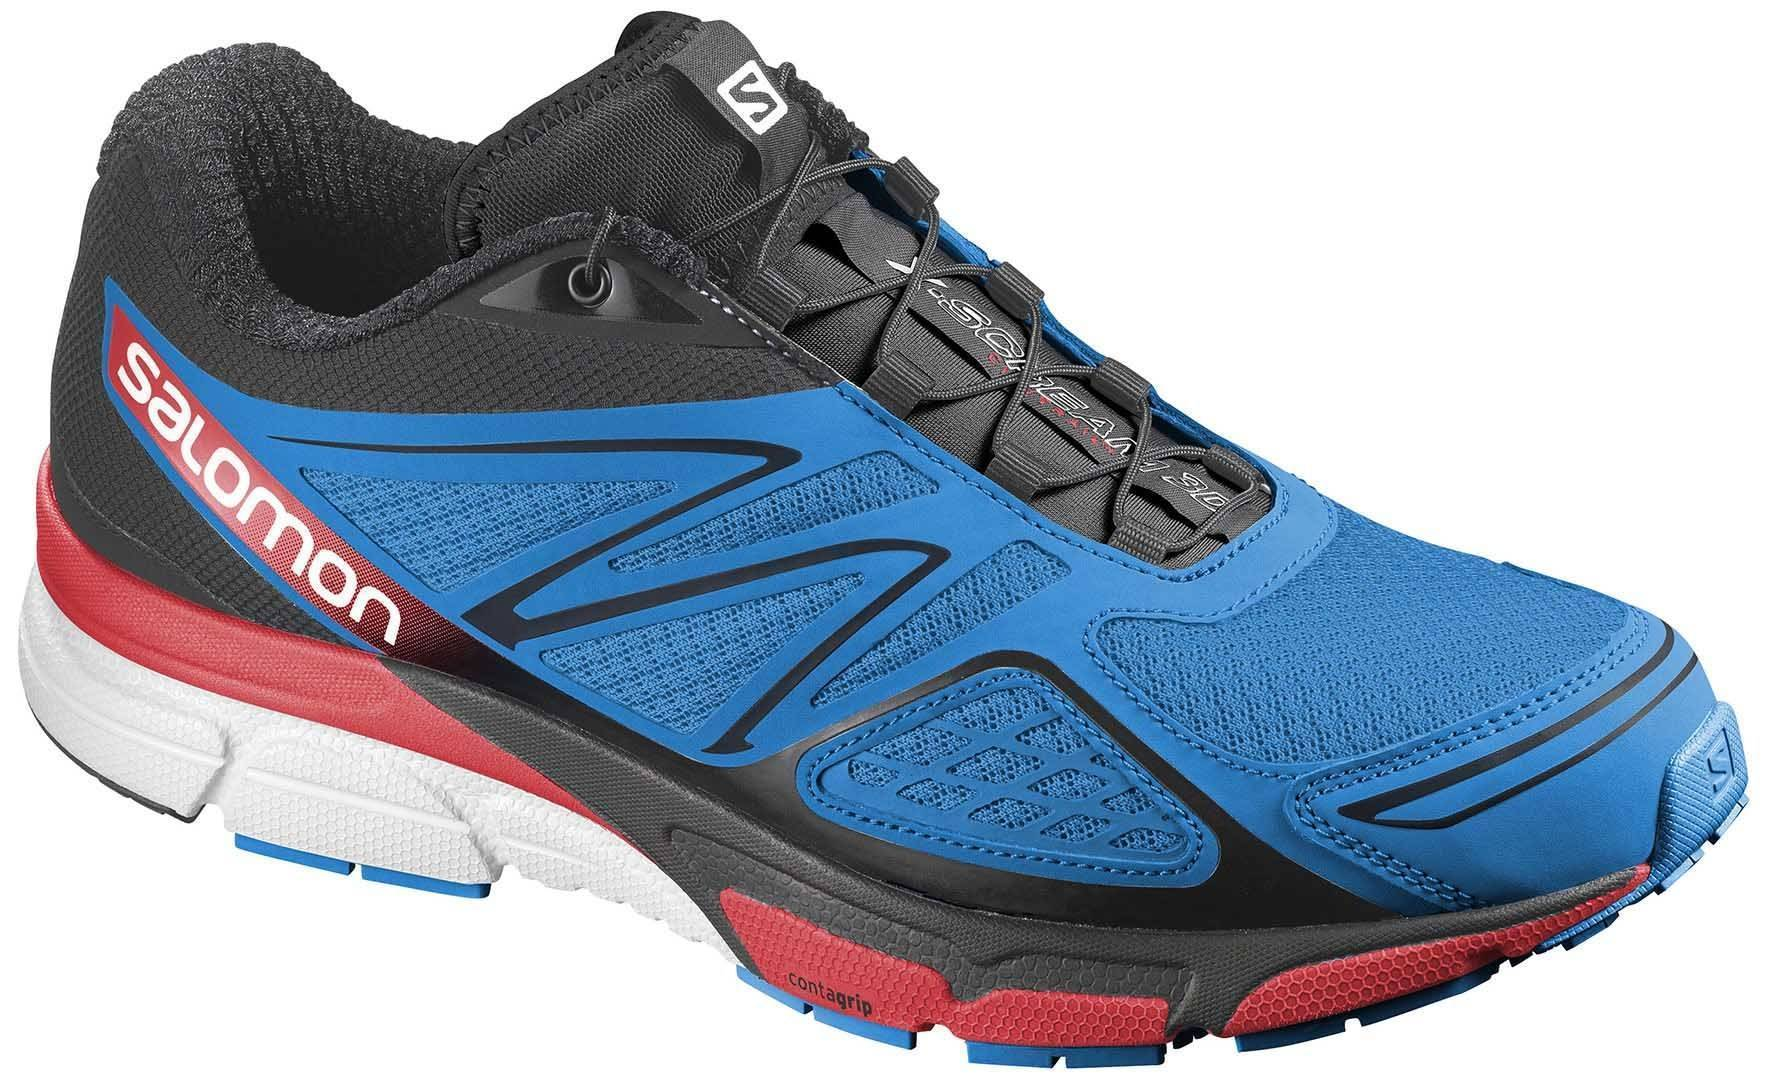 Salomon X-Scream 3 D Bleu/Noir/Rouge 10 (44 2/3)